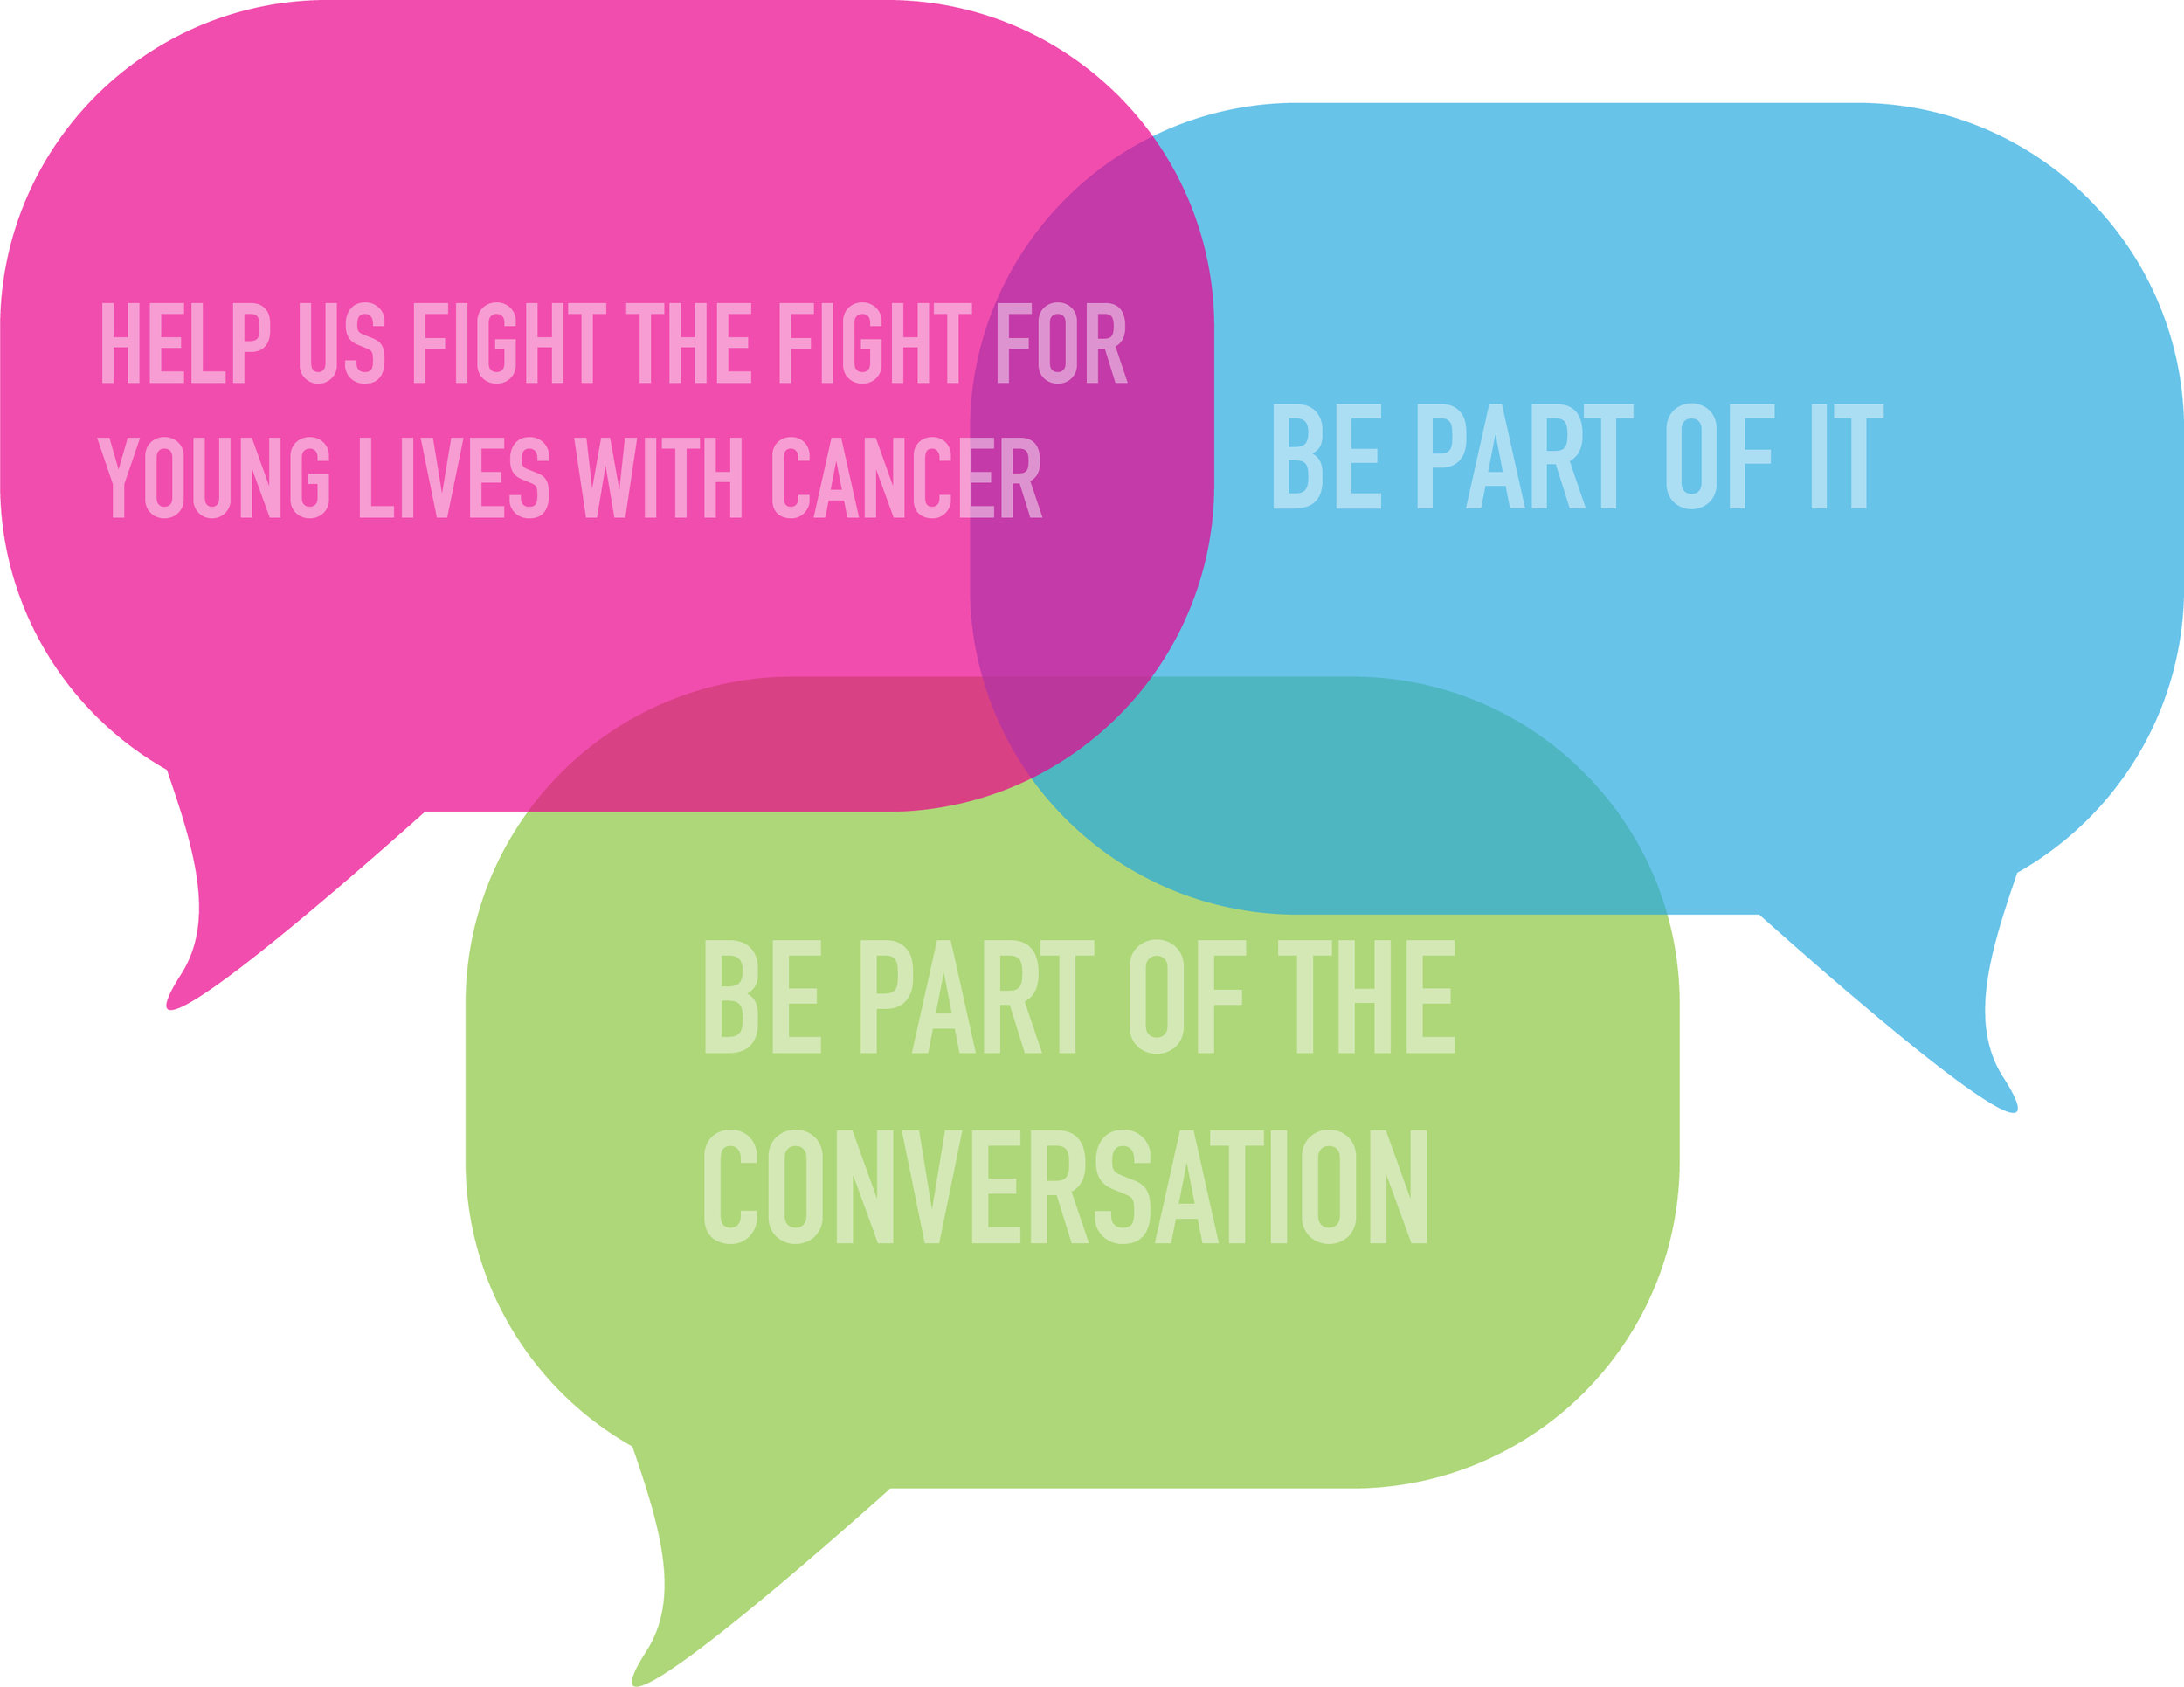 Join The Conversation - Use #YoungLivesvsCancer on social media and raise awareness for CLIC Sargent today!